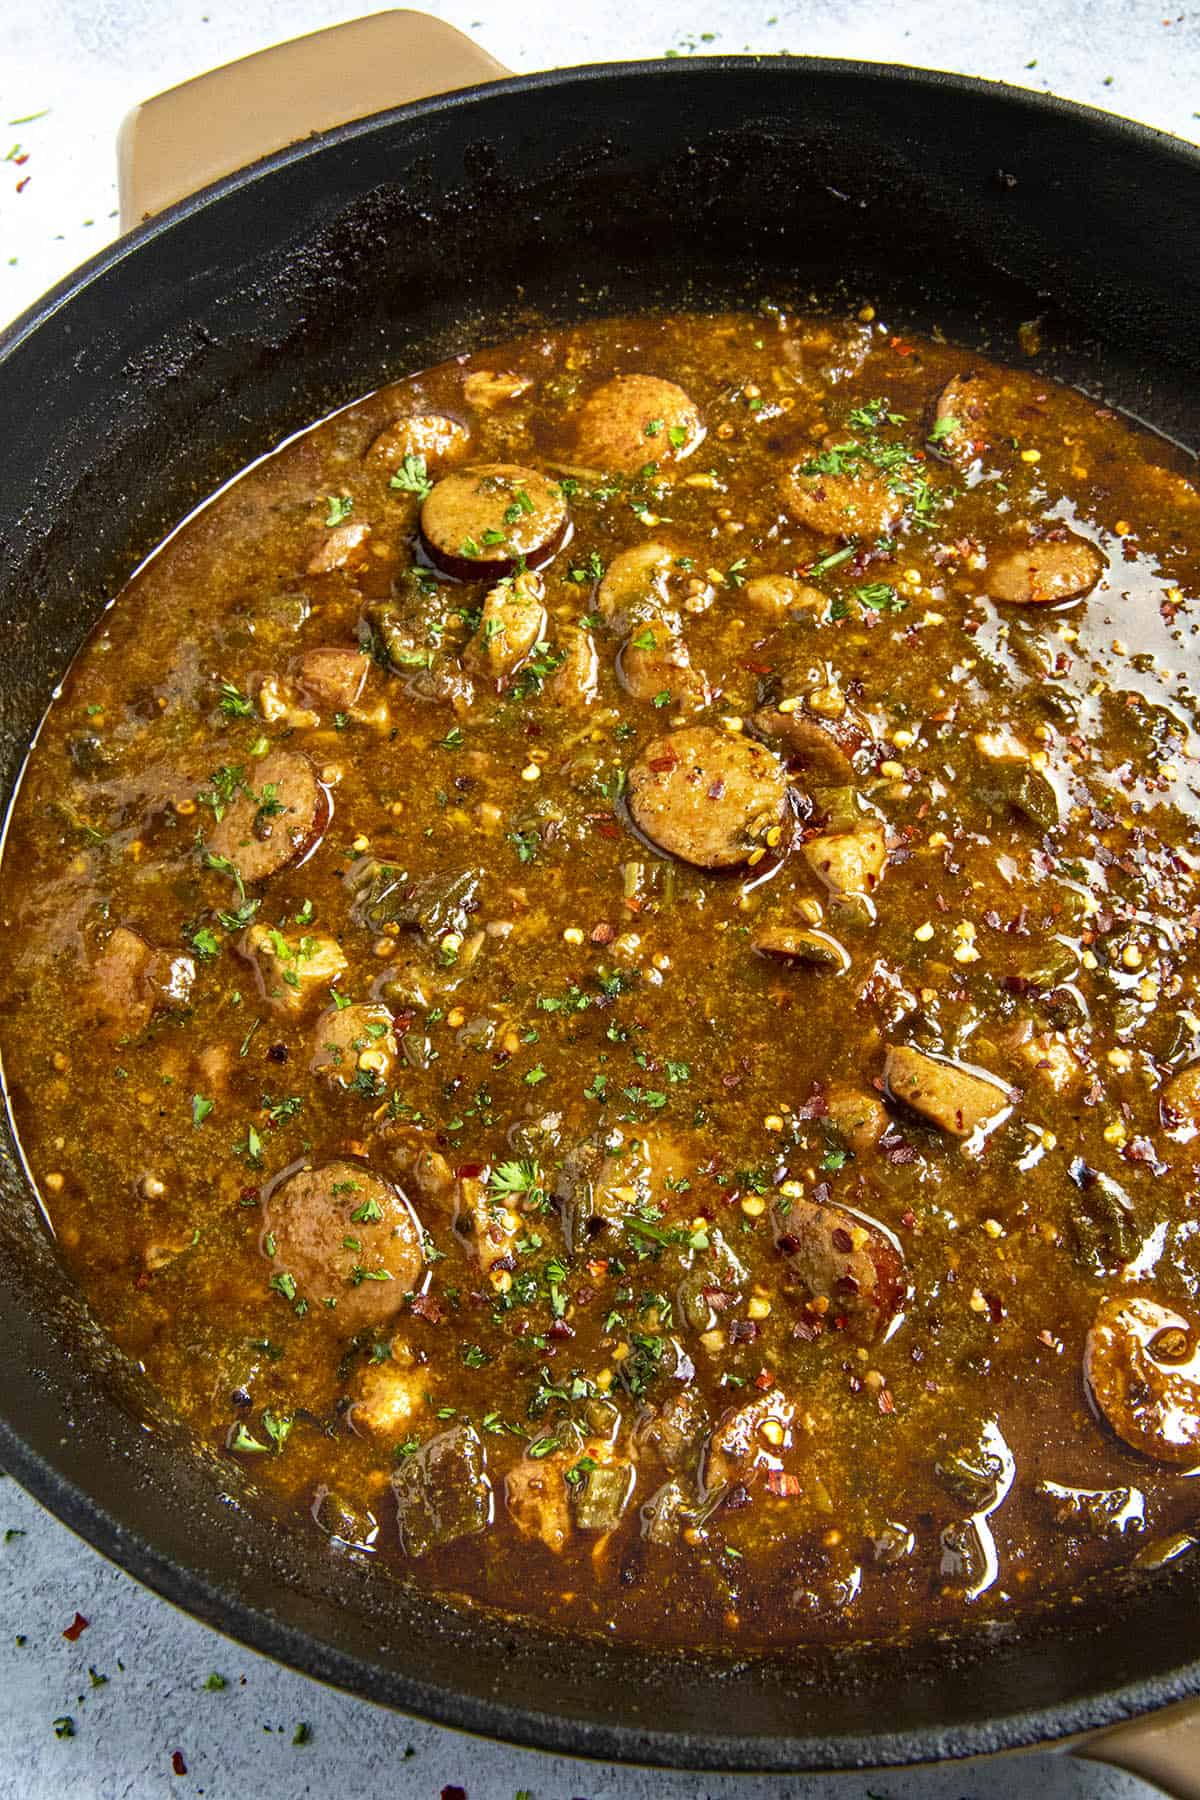 Cajun Chicken and Sausage Gumbo in a pot with garnish